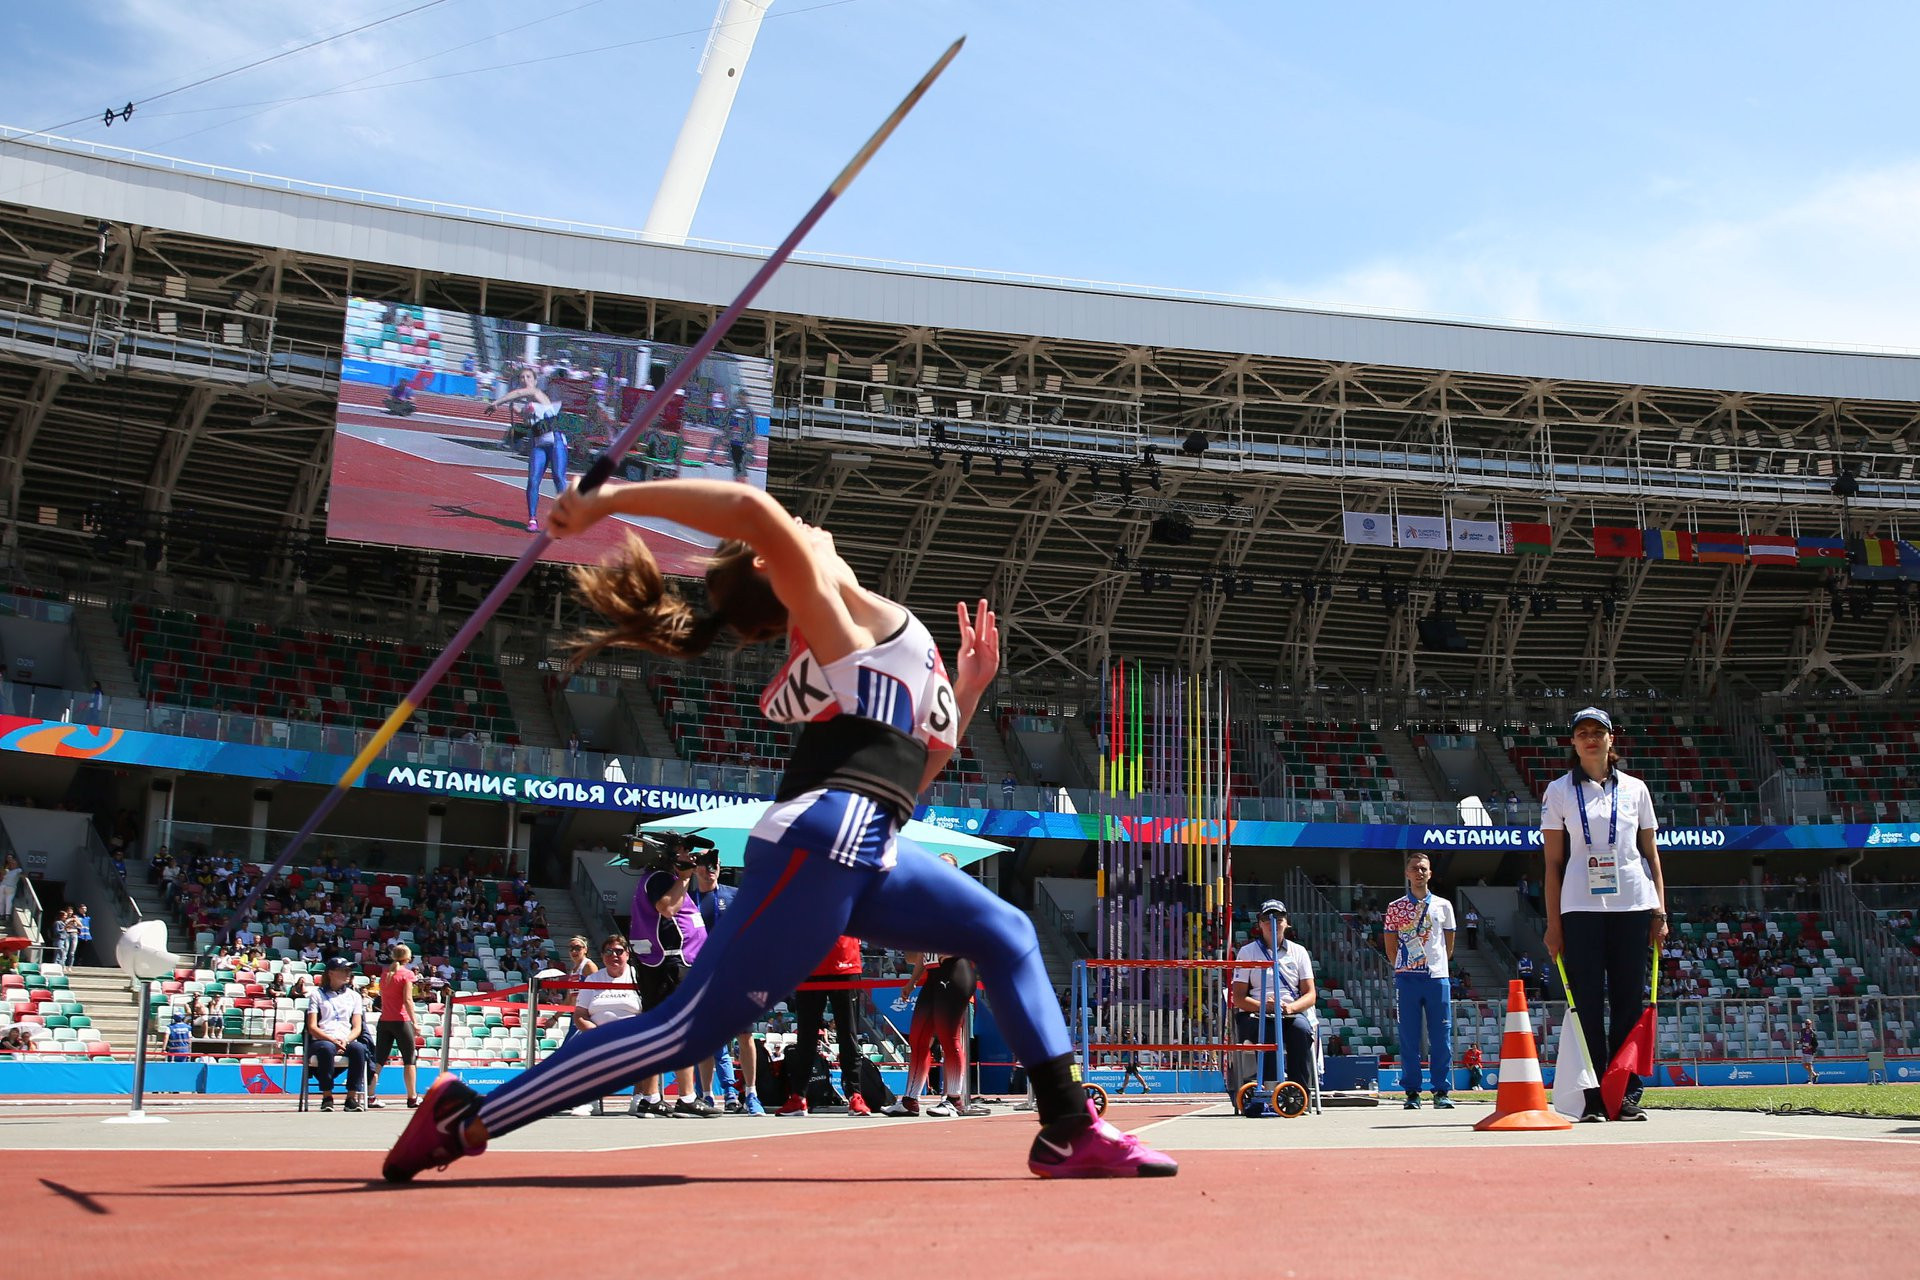 It was a competitive debut for Dynamic New Athletics, which sees athletes compete in teams across track and field events ©Minsk 2019